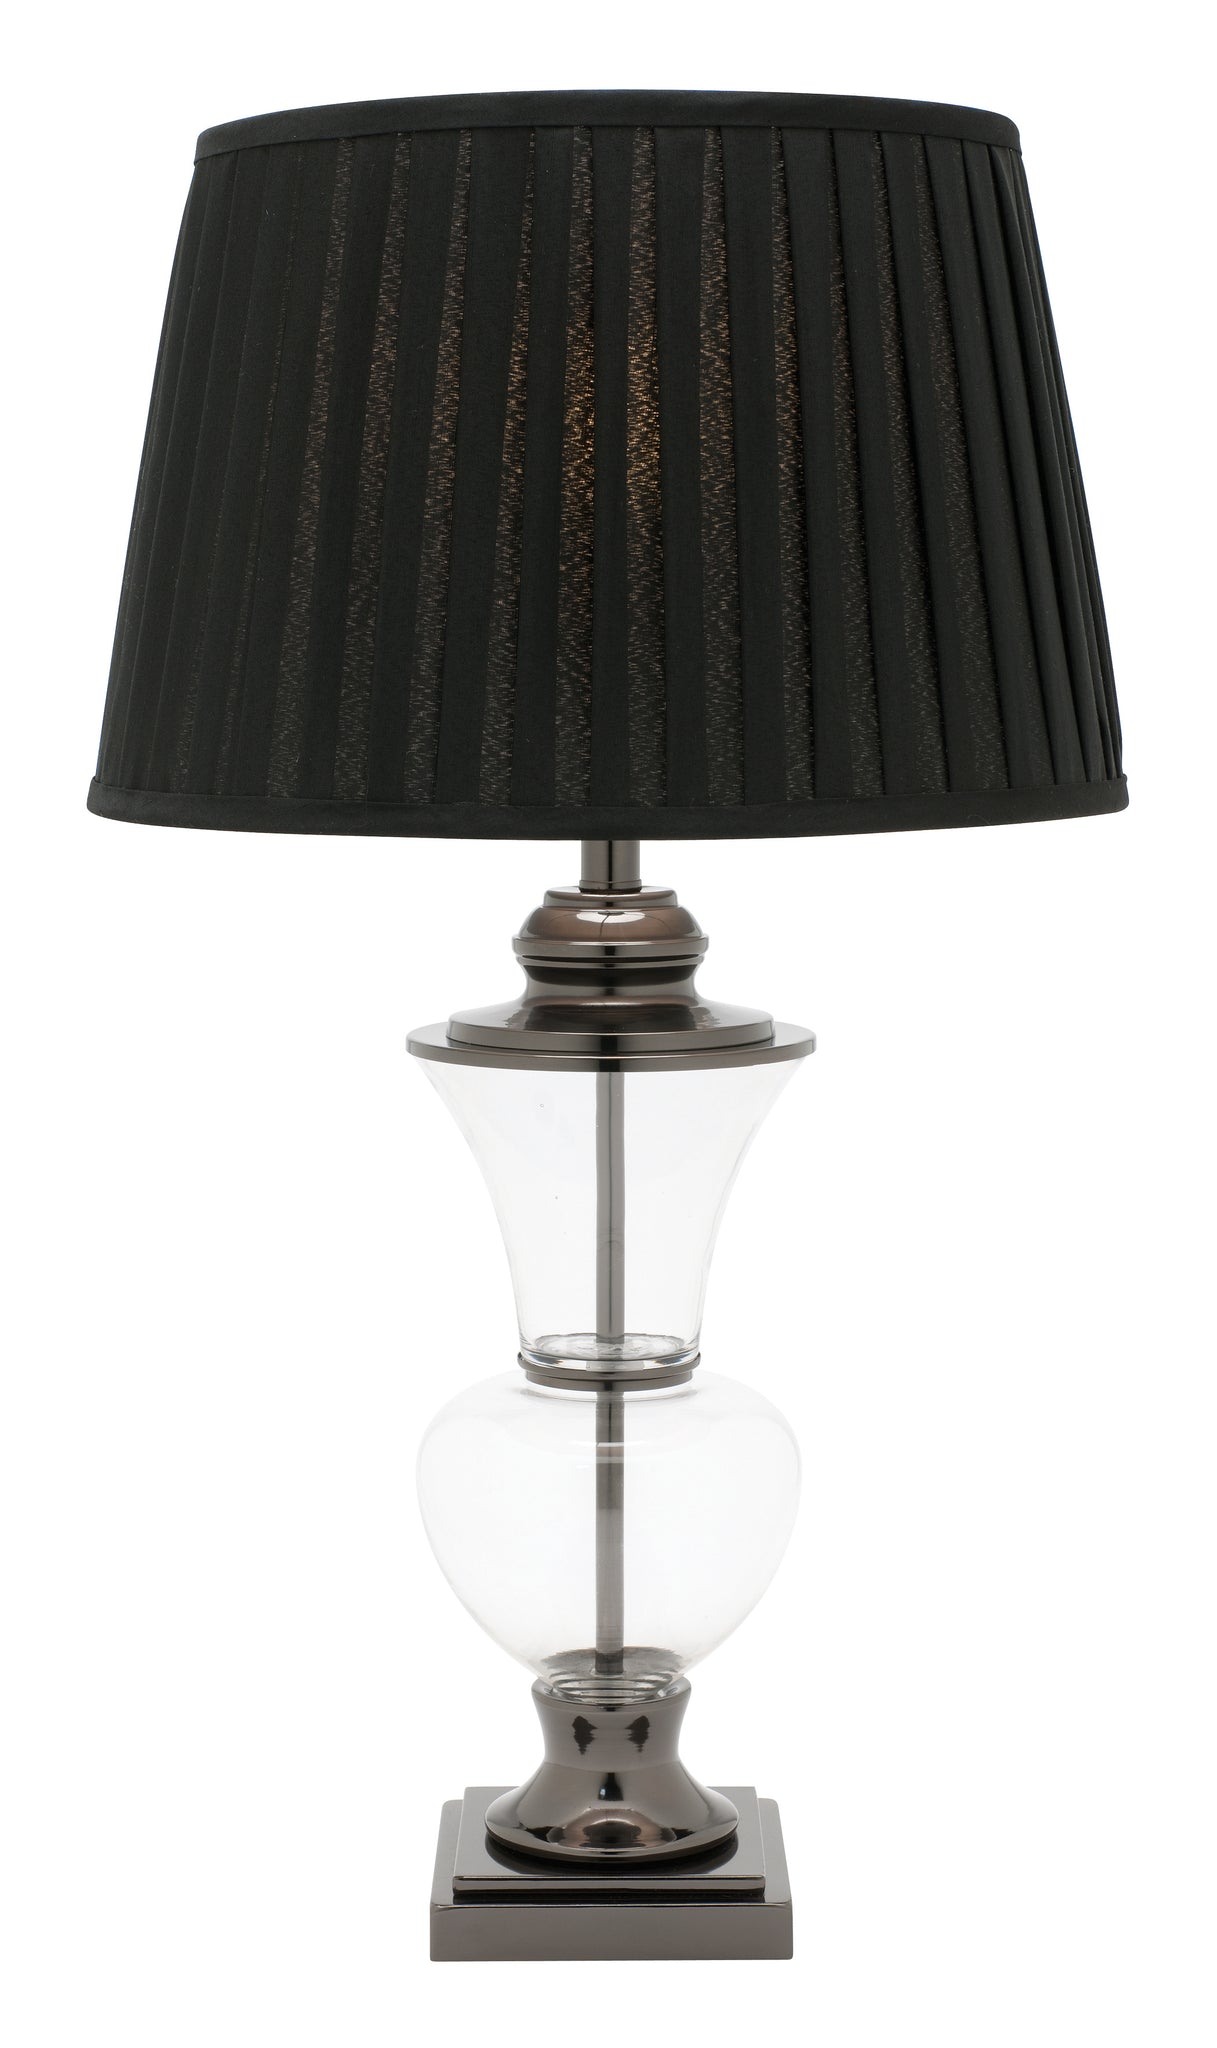 Old Vintage Bed Side Table Lamp - Aglaia lighting